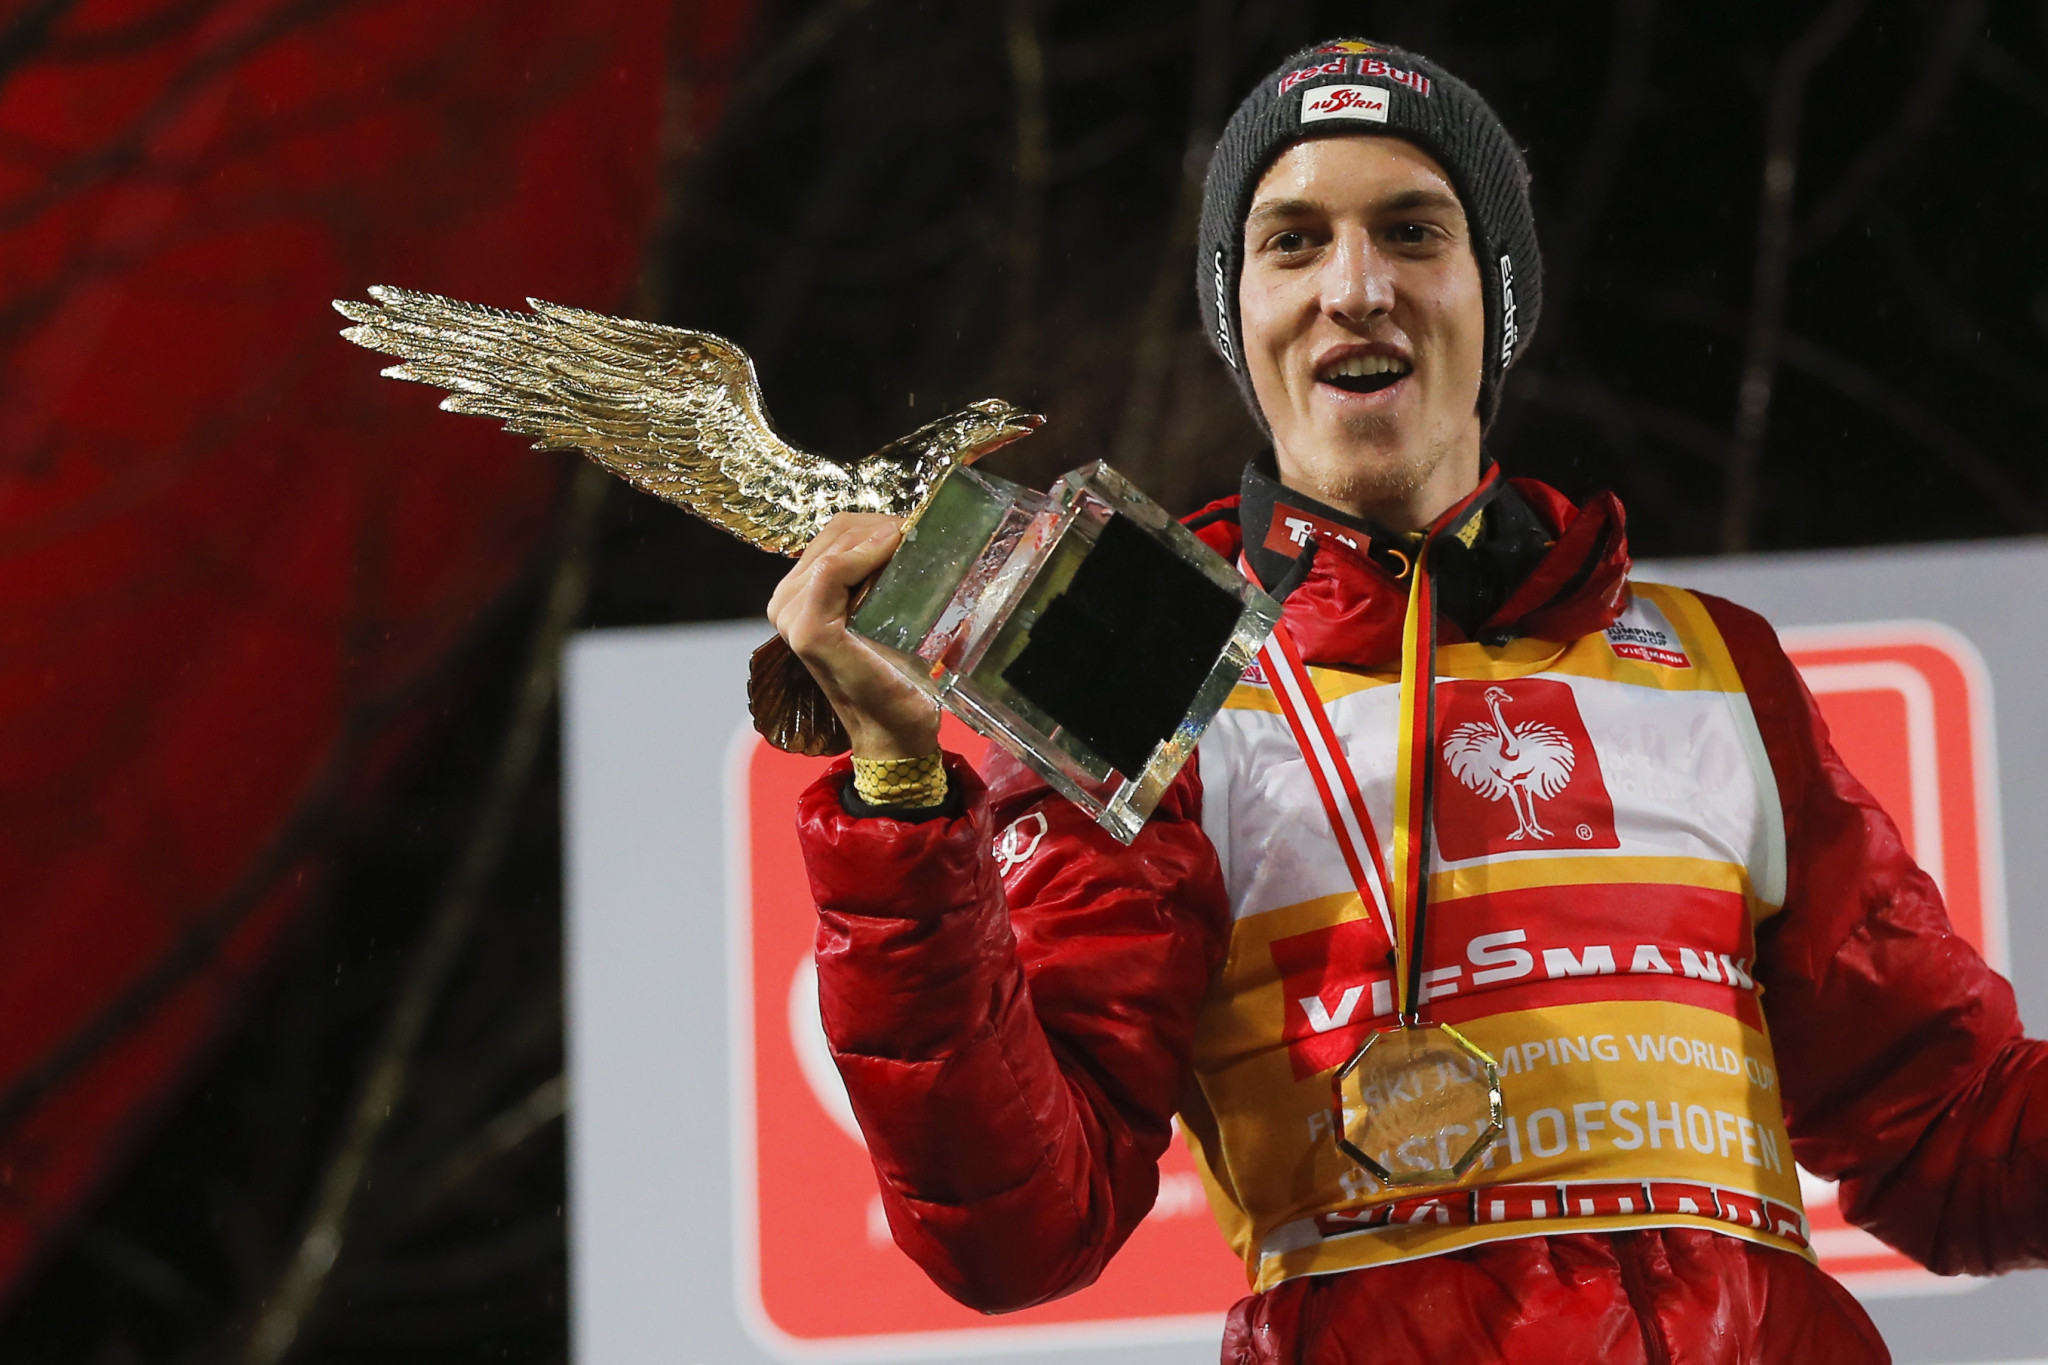 Men's Ski Jumping World Cup's most prolific winner and four-time Olympic medallist Schlierenzauer retires